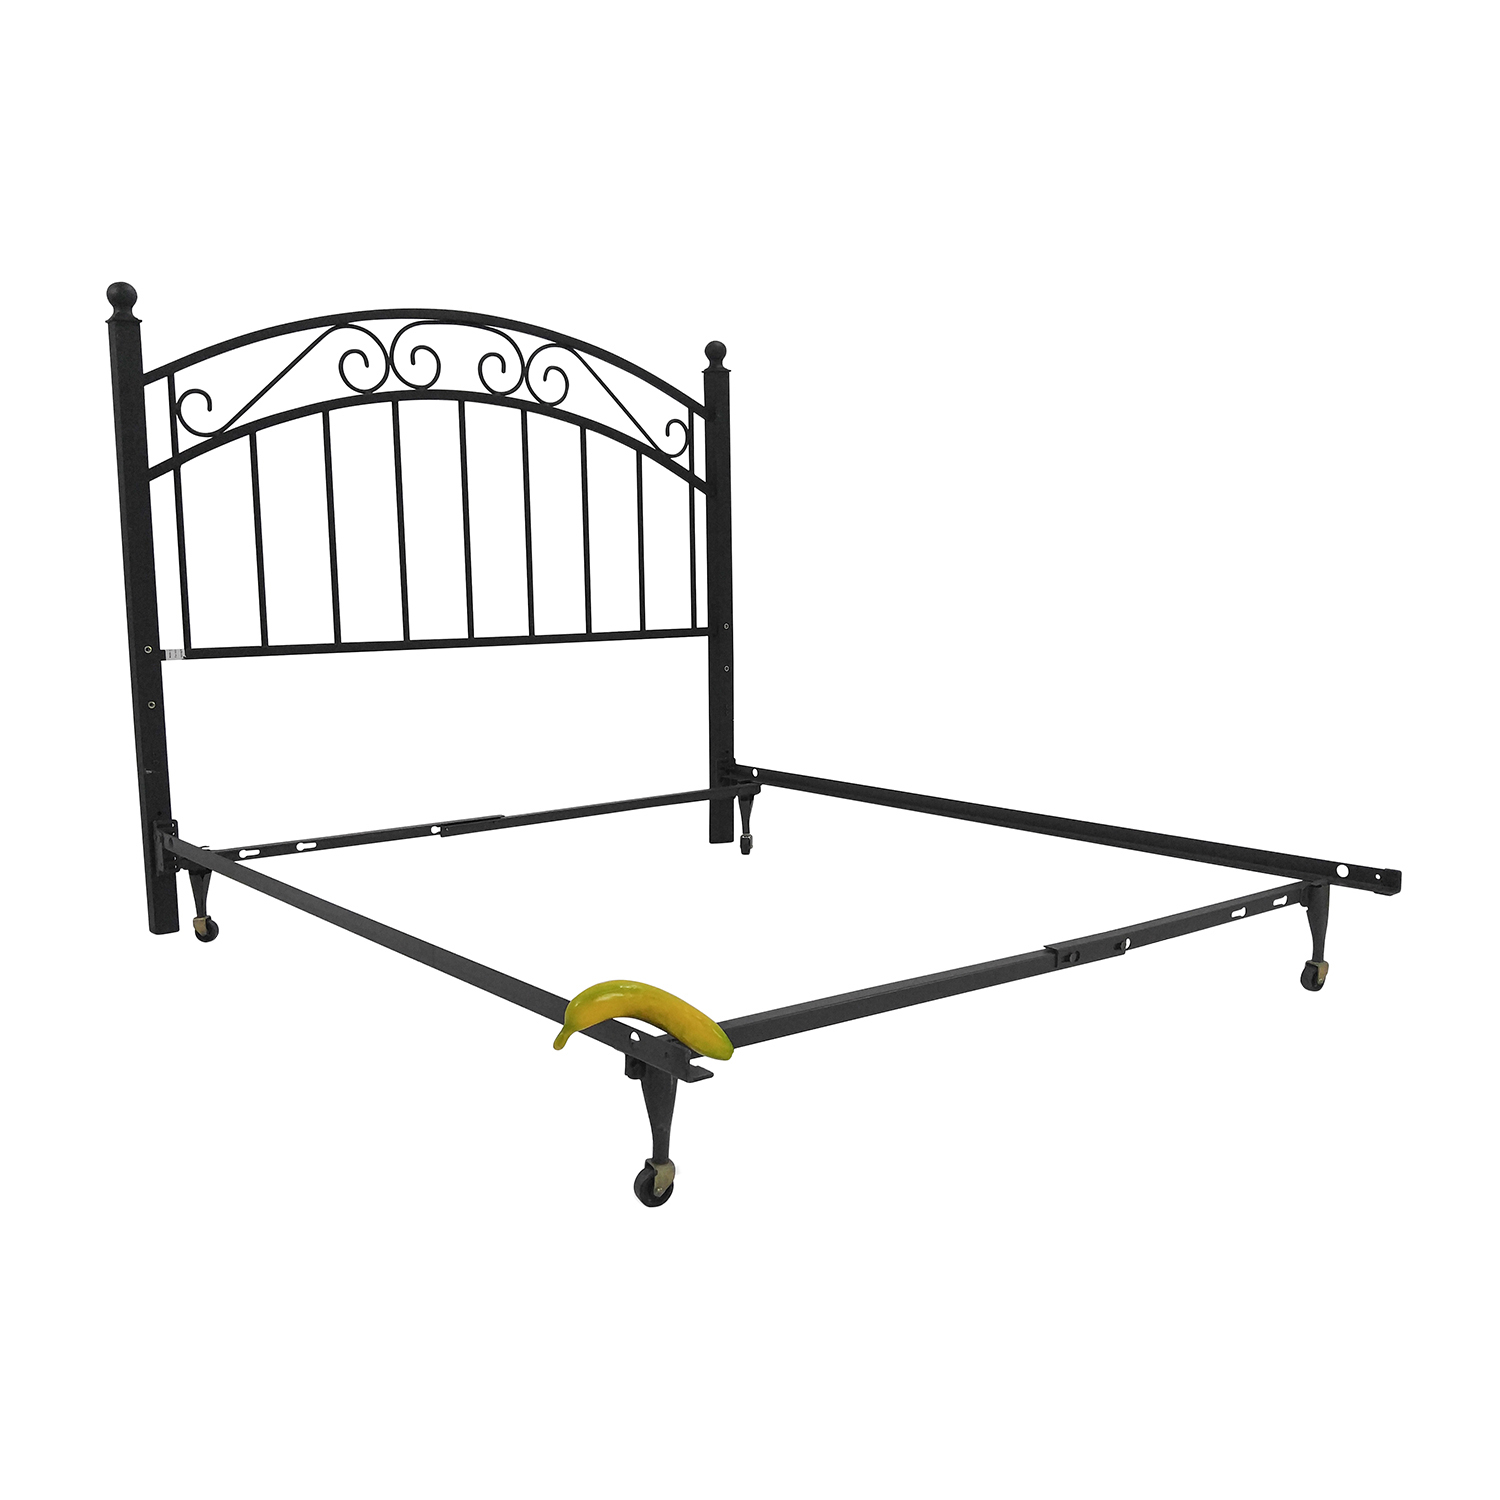 Crate and Barrel Crate and Barrel Full Iron Bed Frame and Headboard nyc